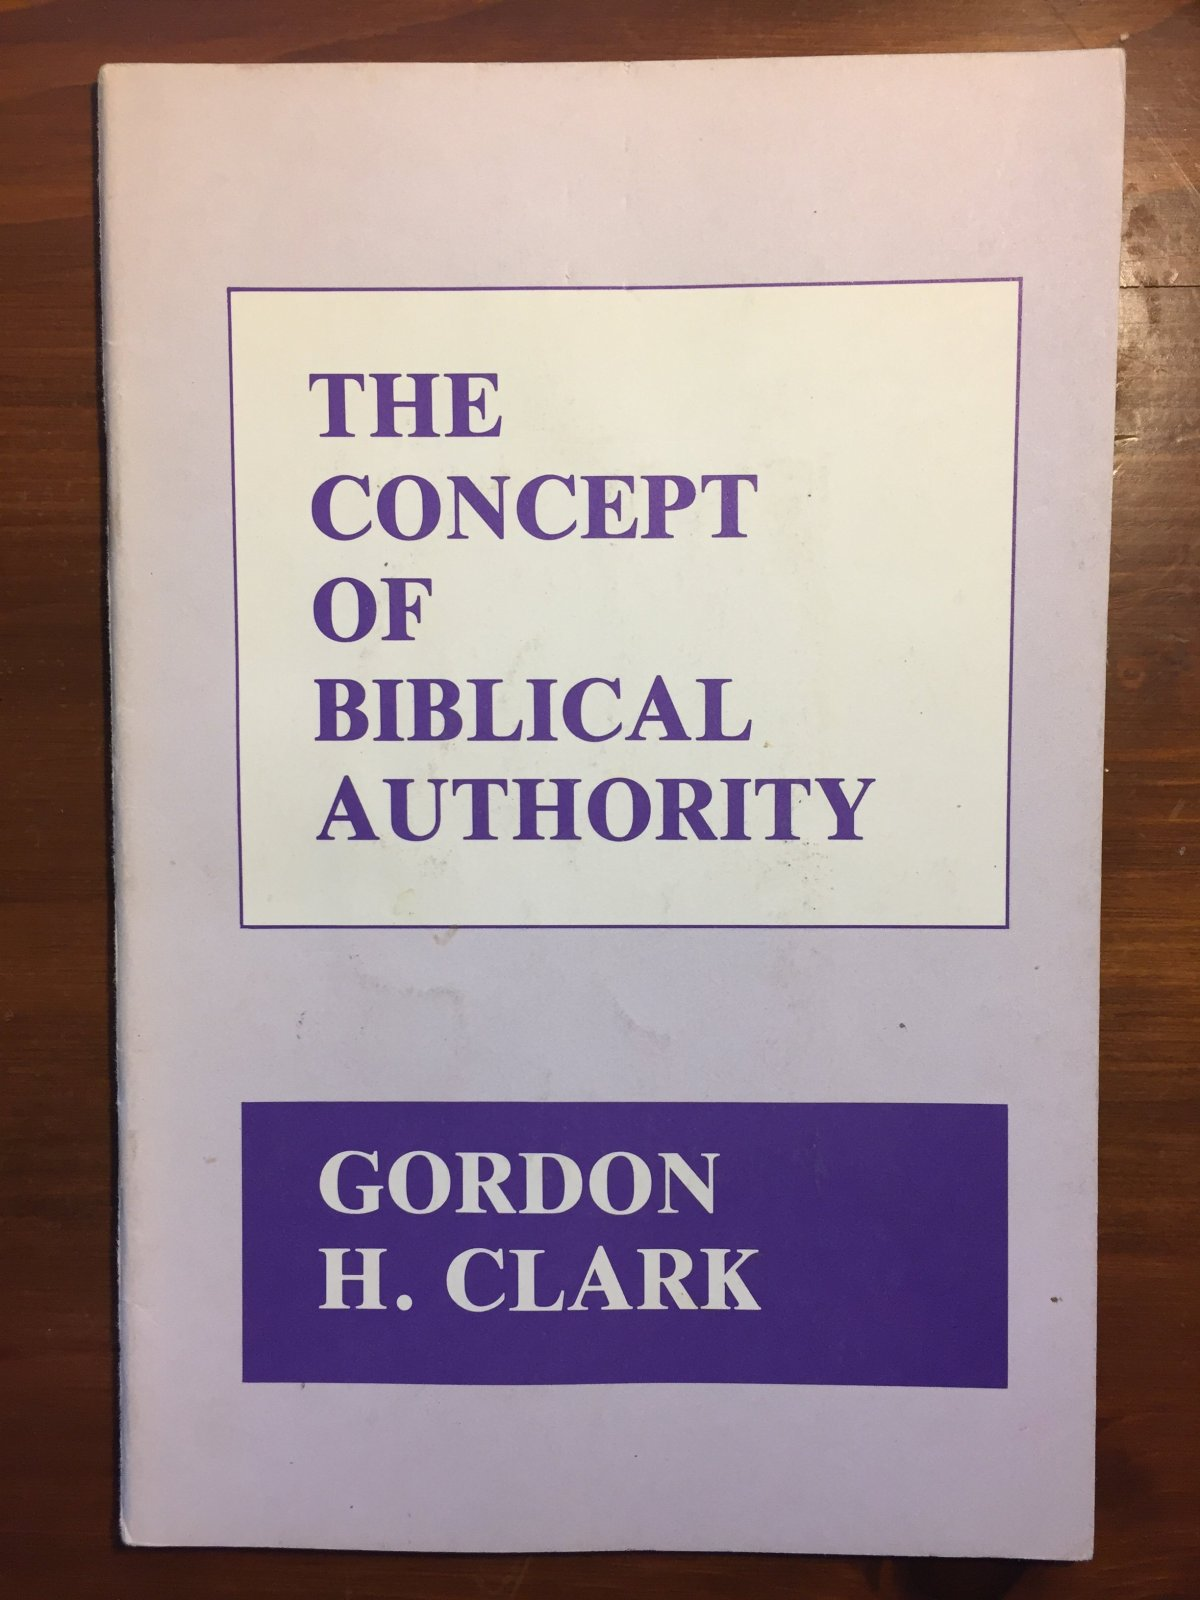 ghc review 26; the concept of biblical authority 1